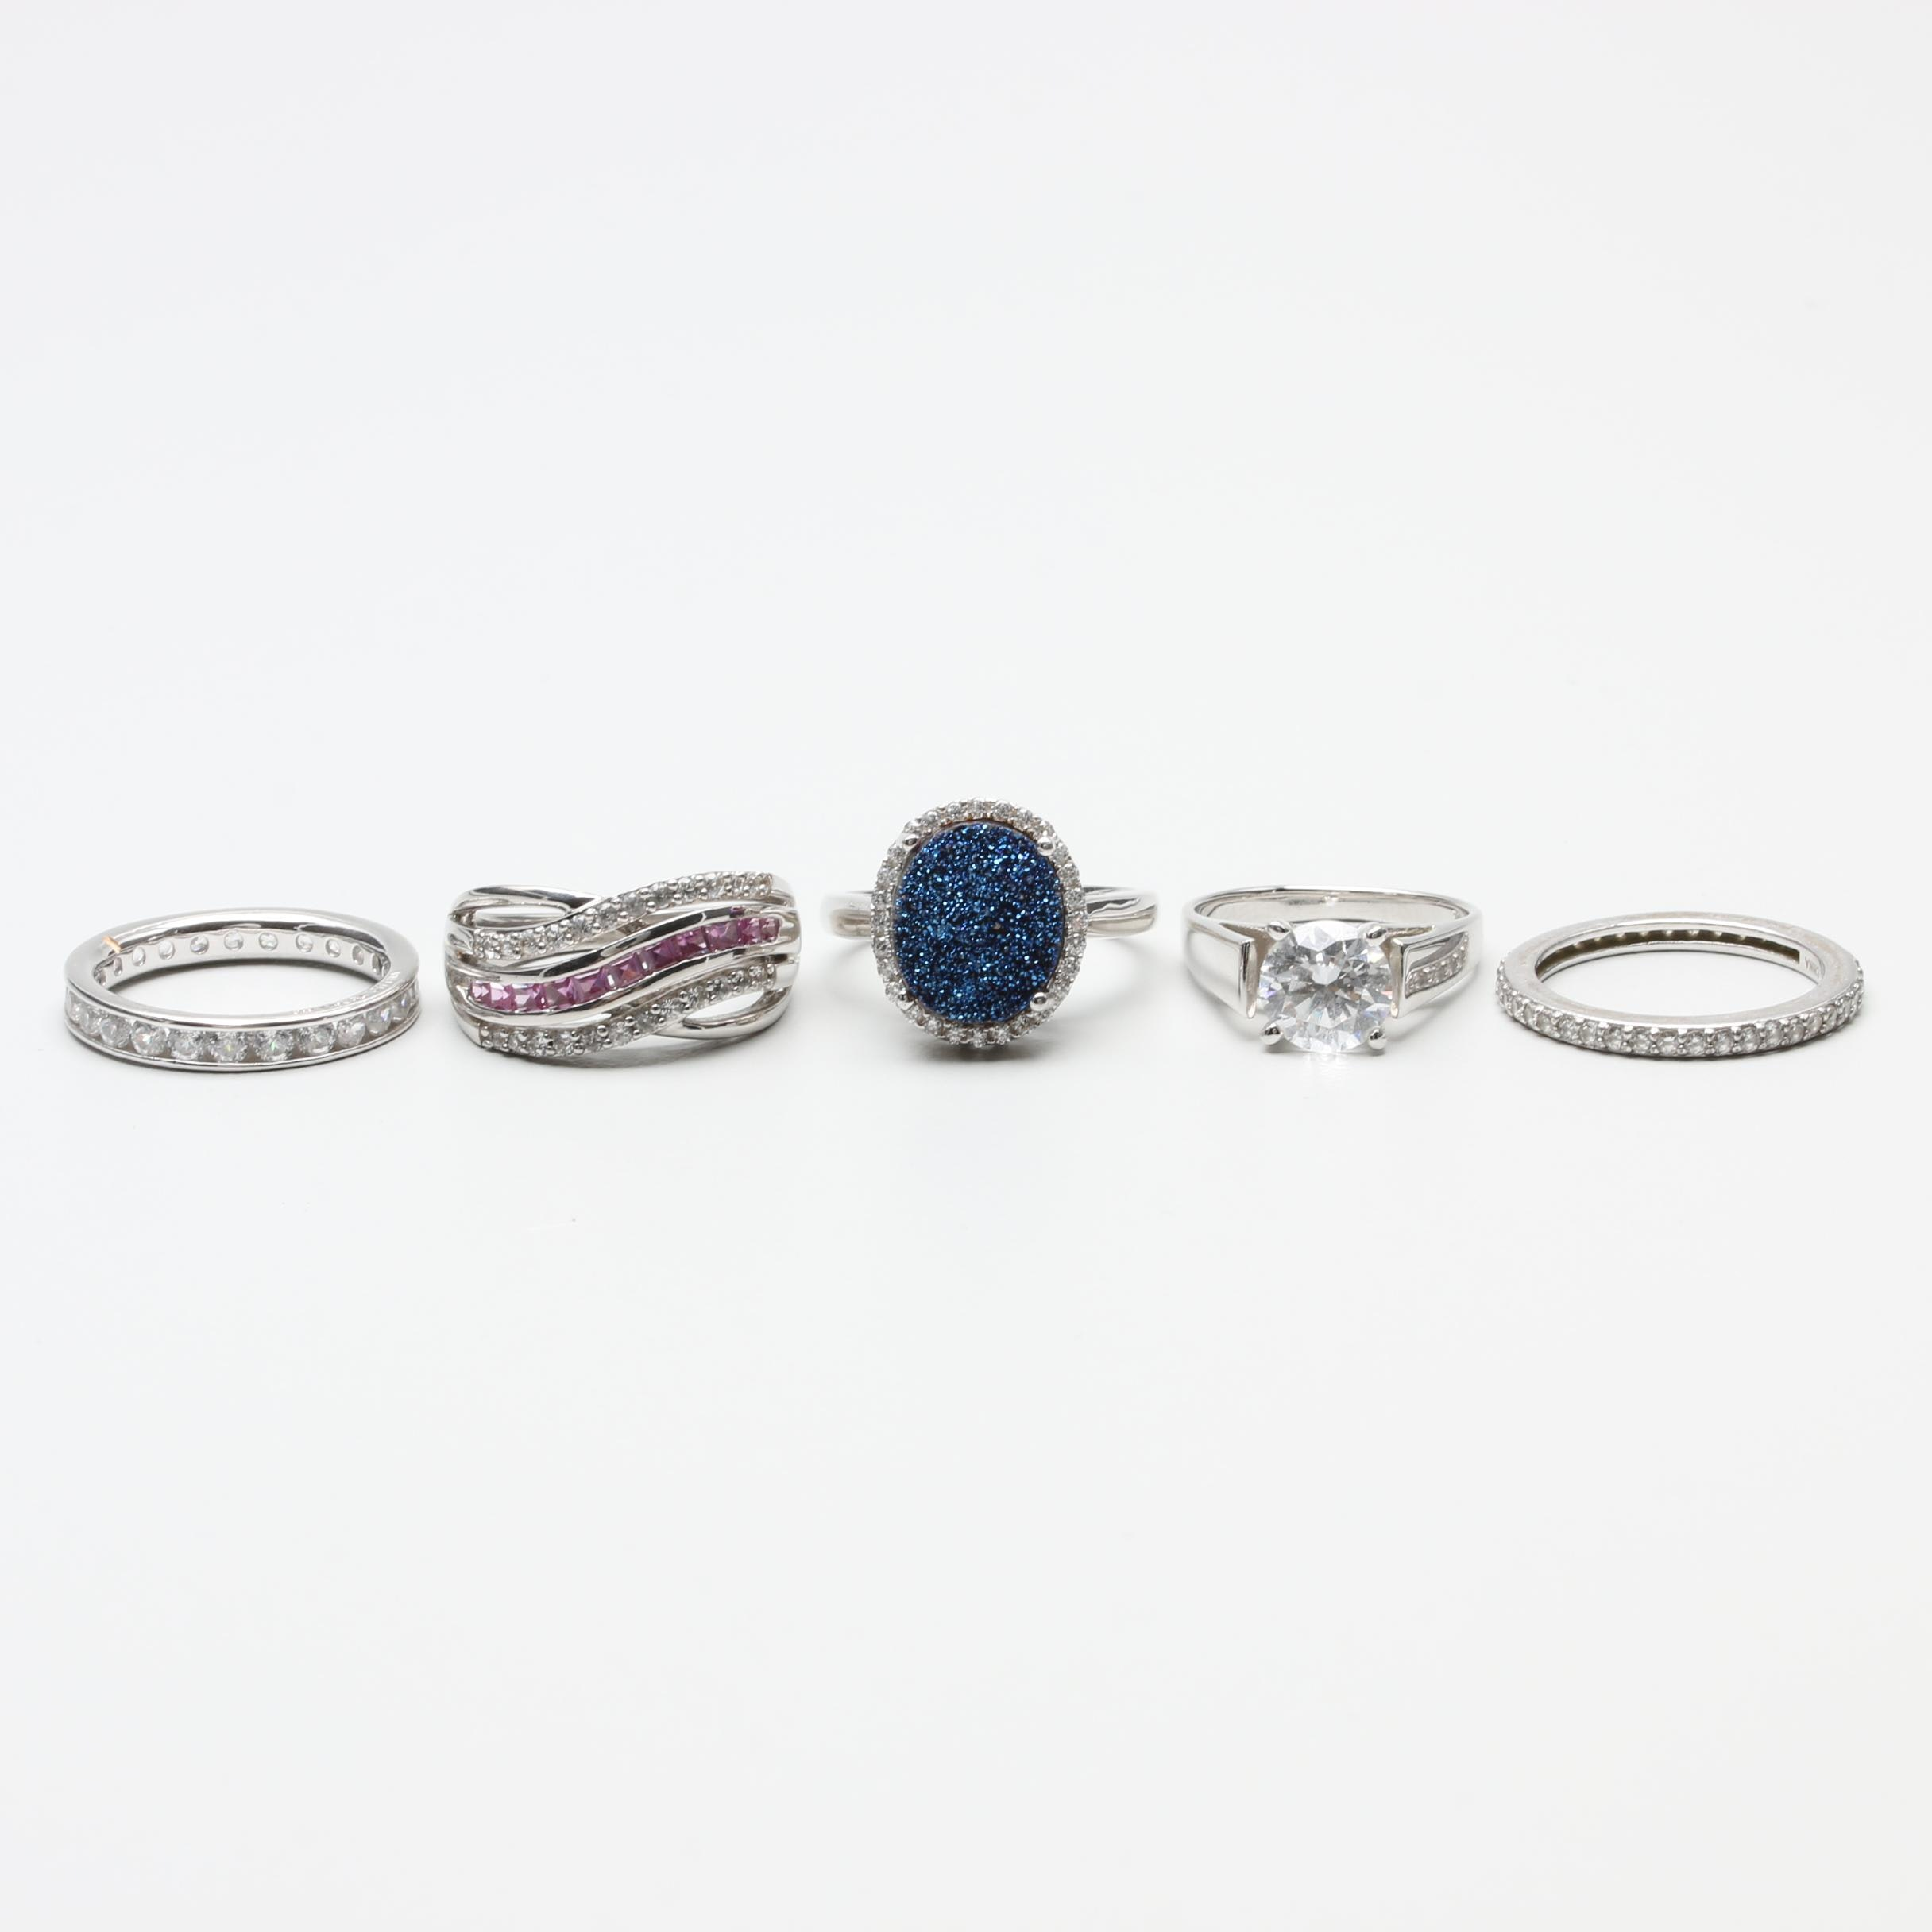 Sterling Silver and 14K White Gold Ring Assortment Including Synthetic Sapphire